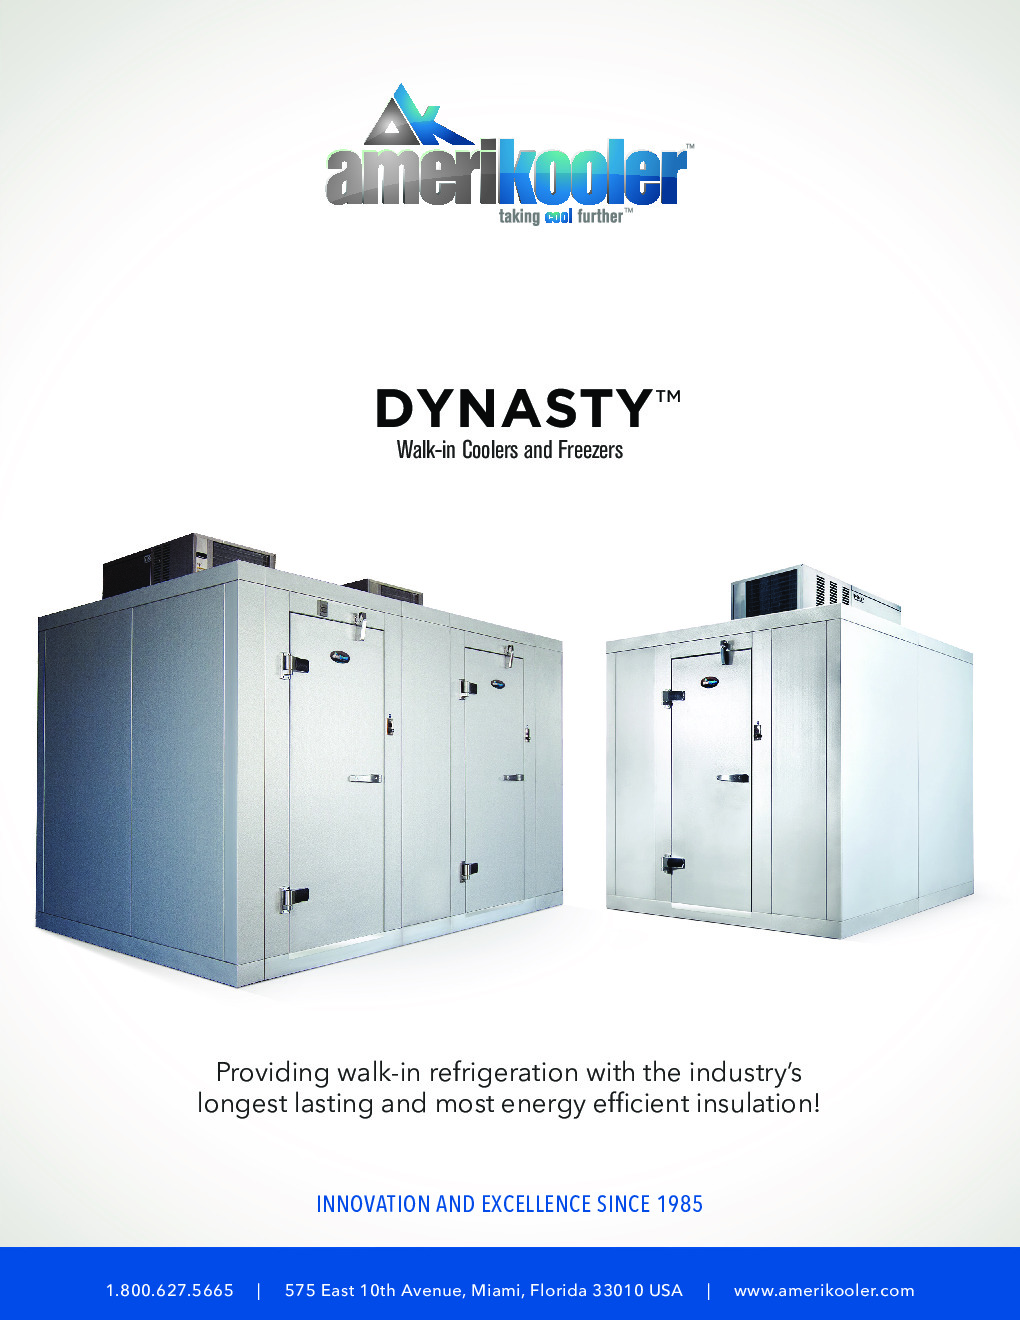 AmeriKooler DW091877F-4/14 Indoor 9' X 18' Walk-In, 14' L Cooler with Floor and 4' L Freezer, Box Only